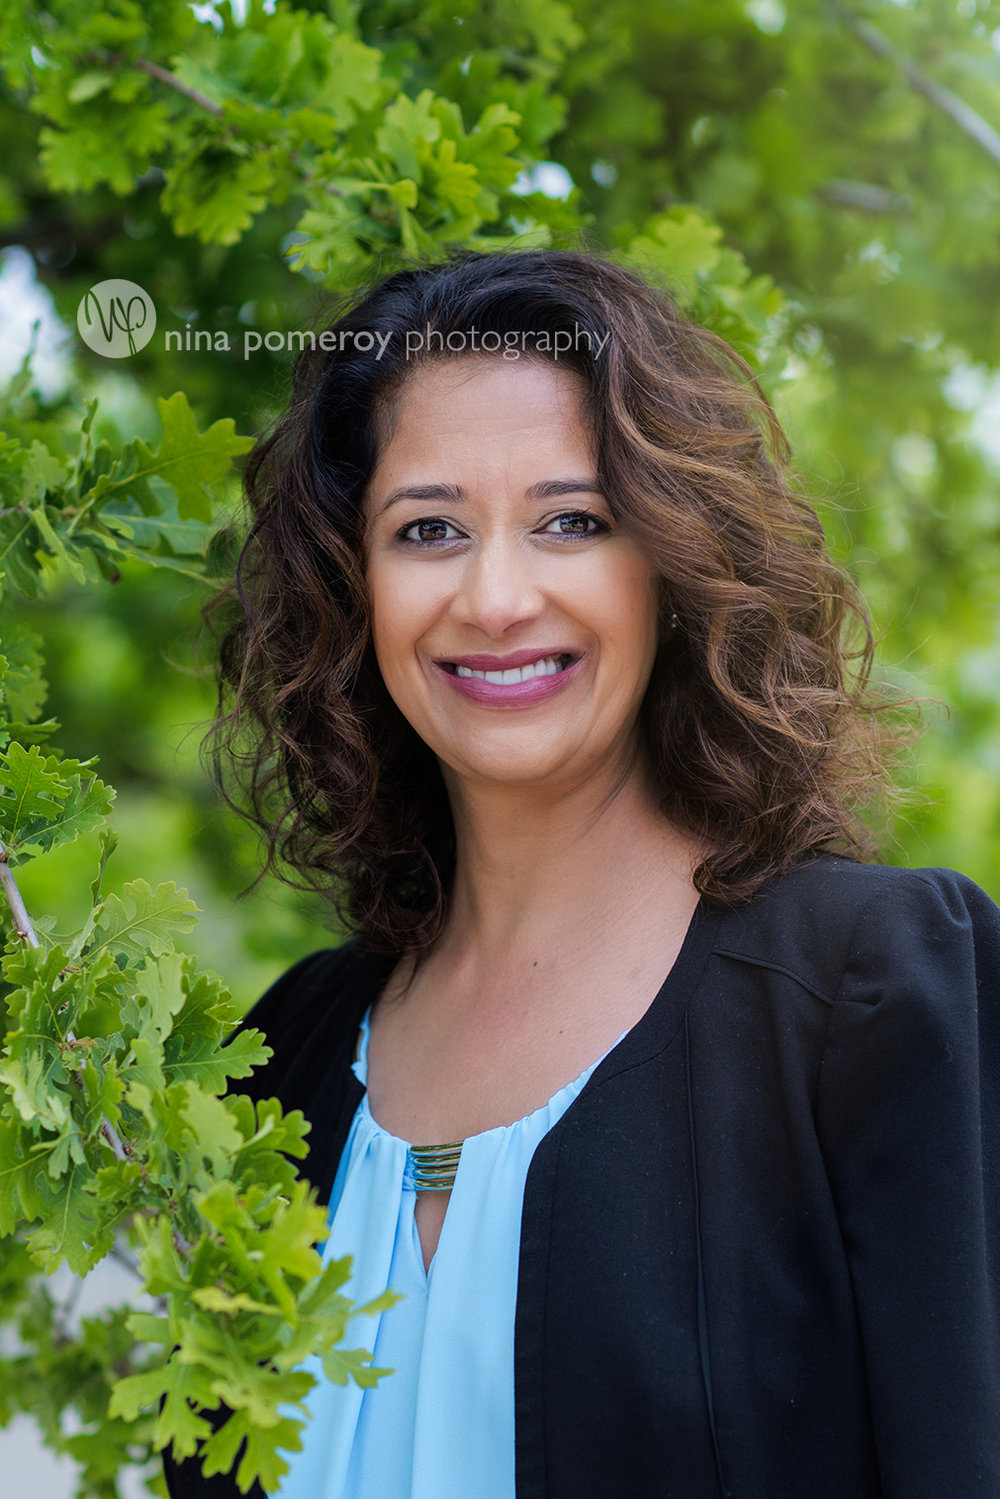 business-portrait-headshot-photographer-nina-pomeroy-danville.jpg